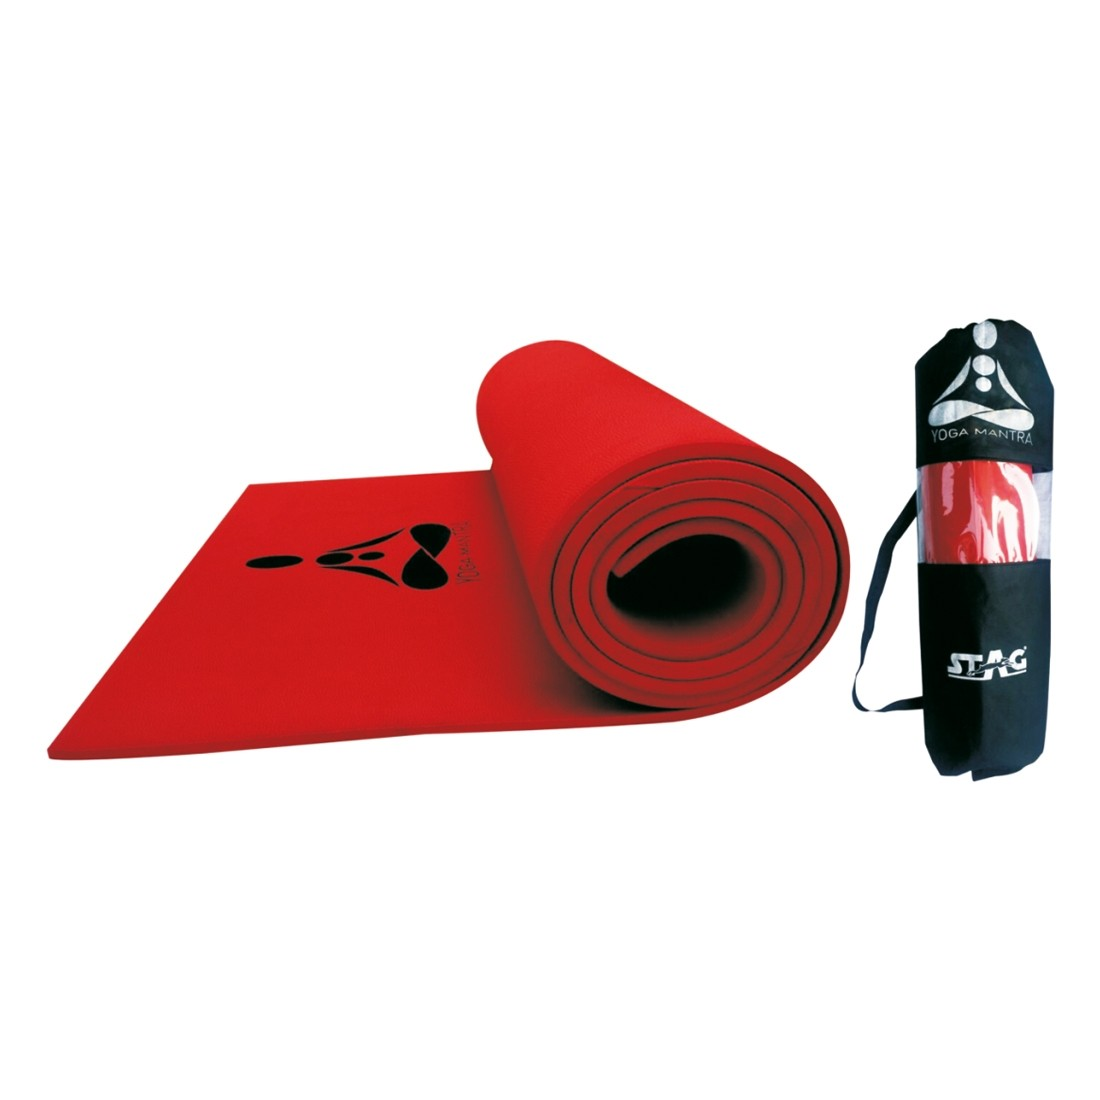 YOGA MANTRA BLACK/SILVERMAT 6 mm with bag